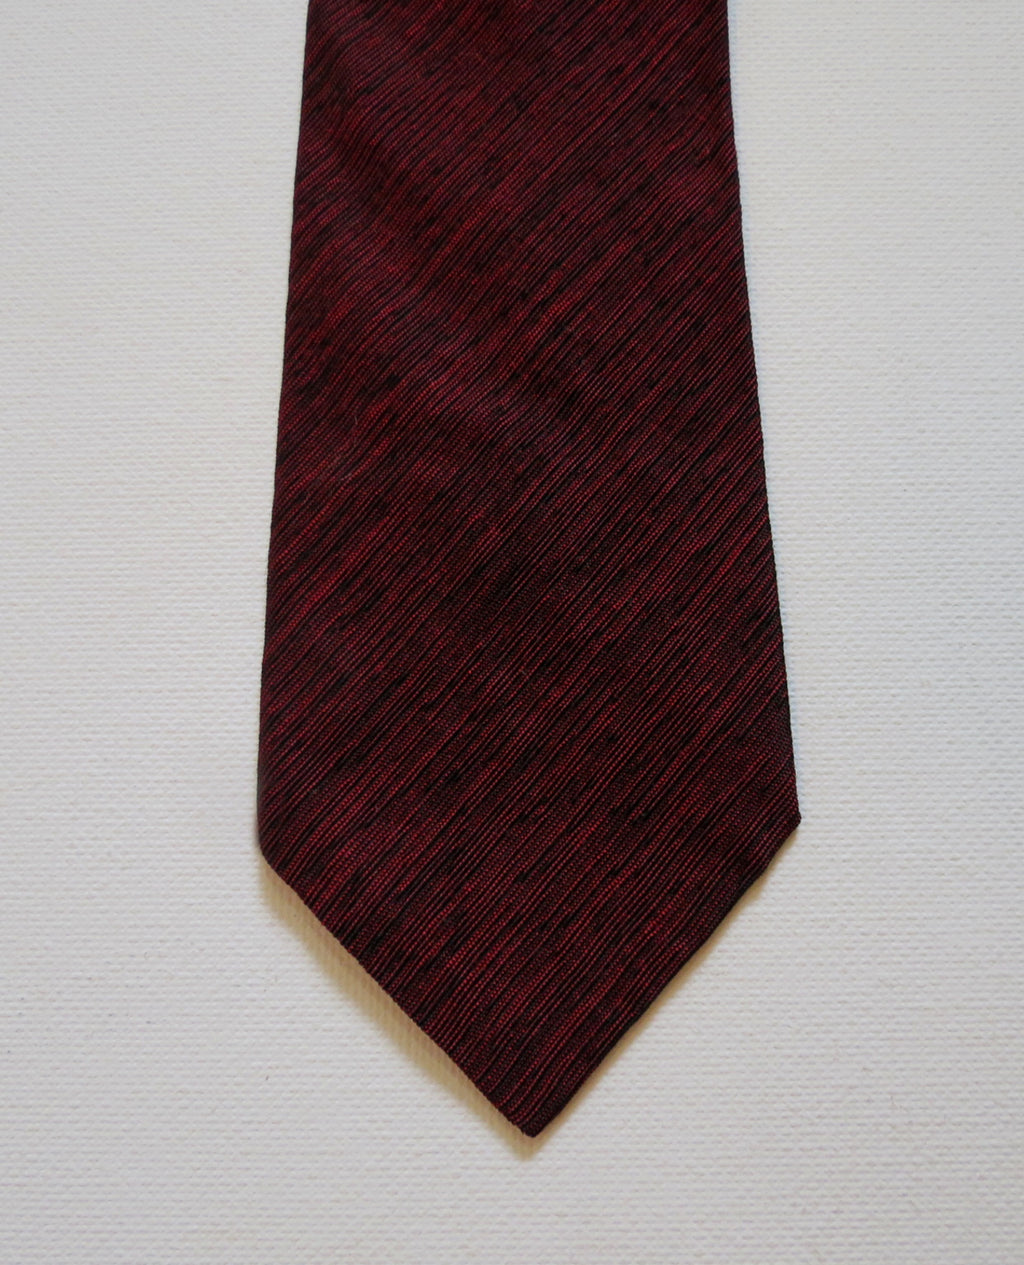 vintage 1960s burgundy wine color skinny tie tricel acetate